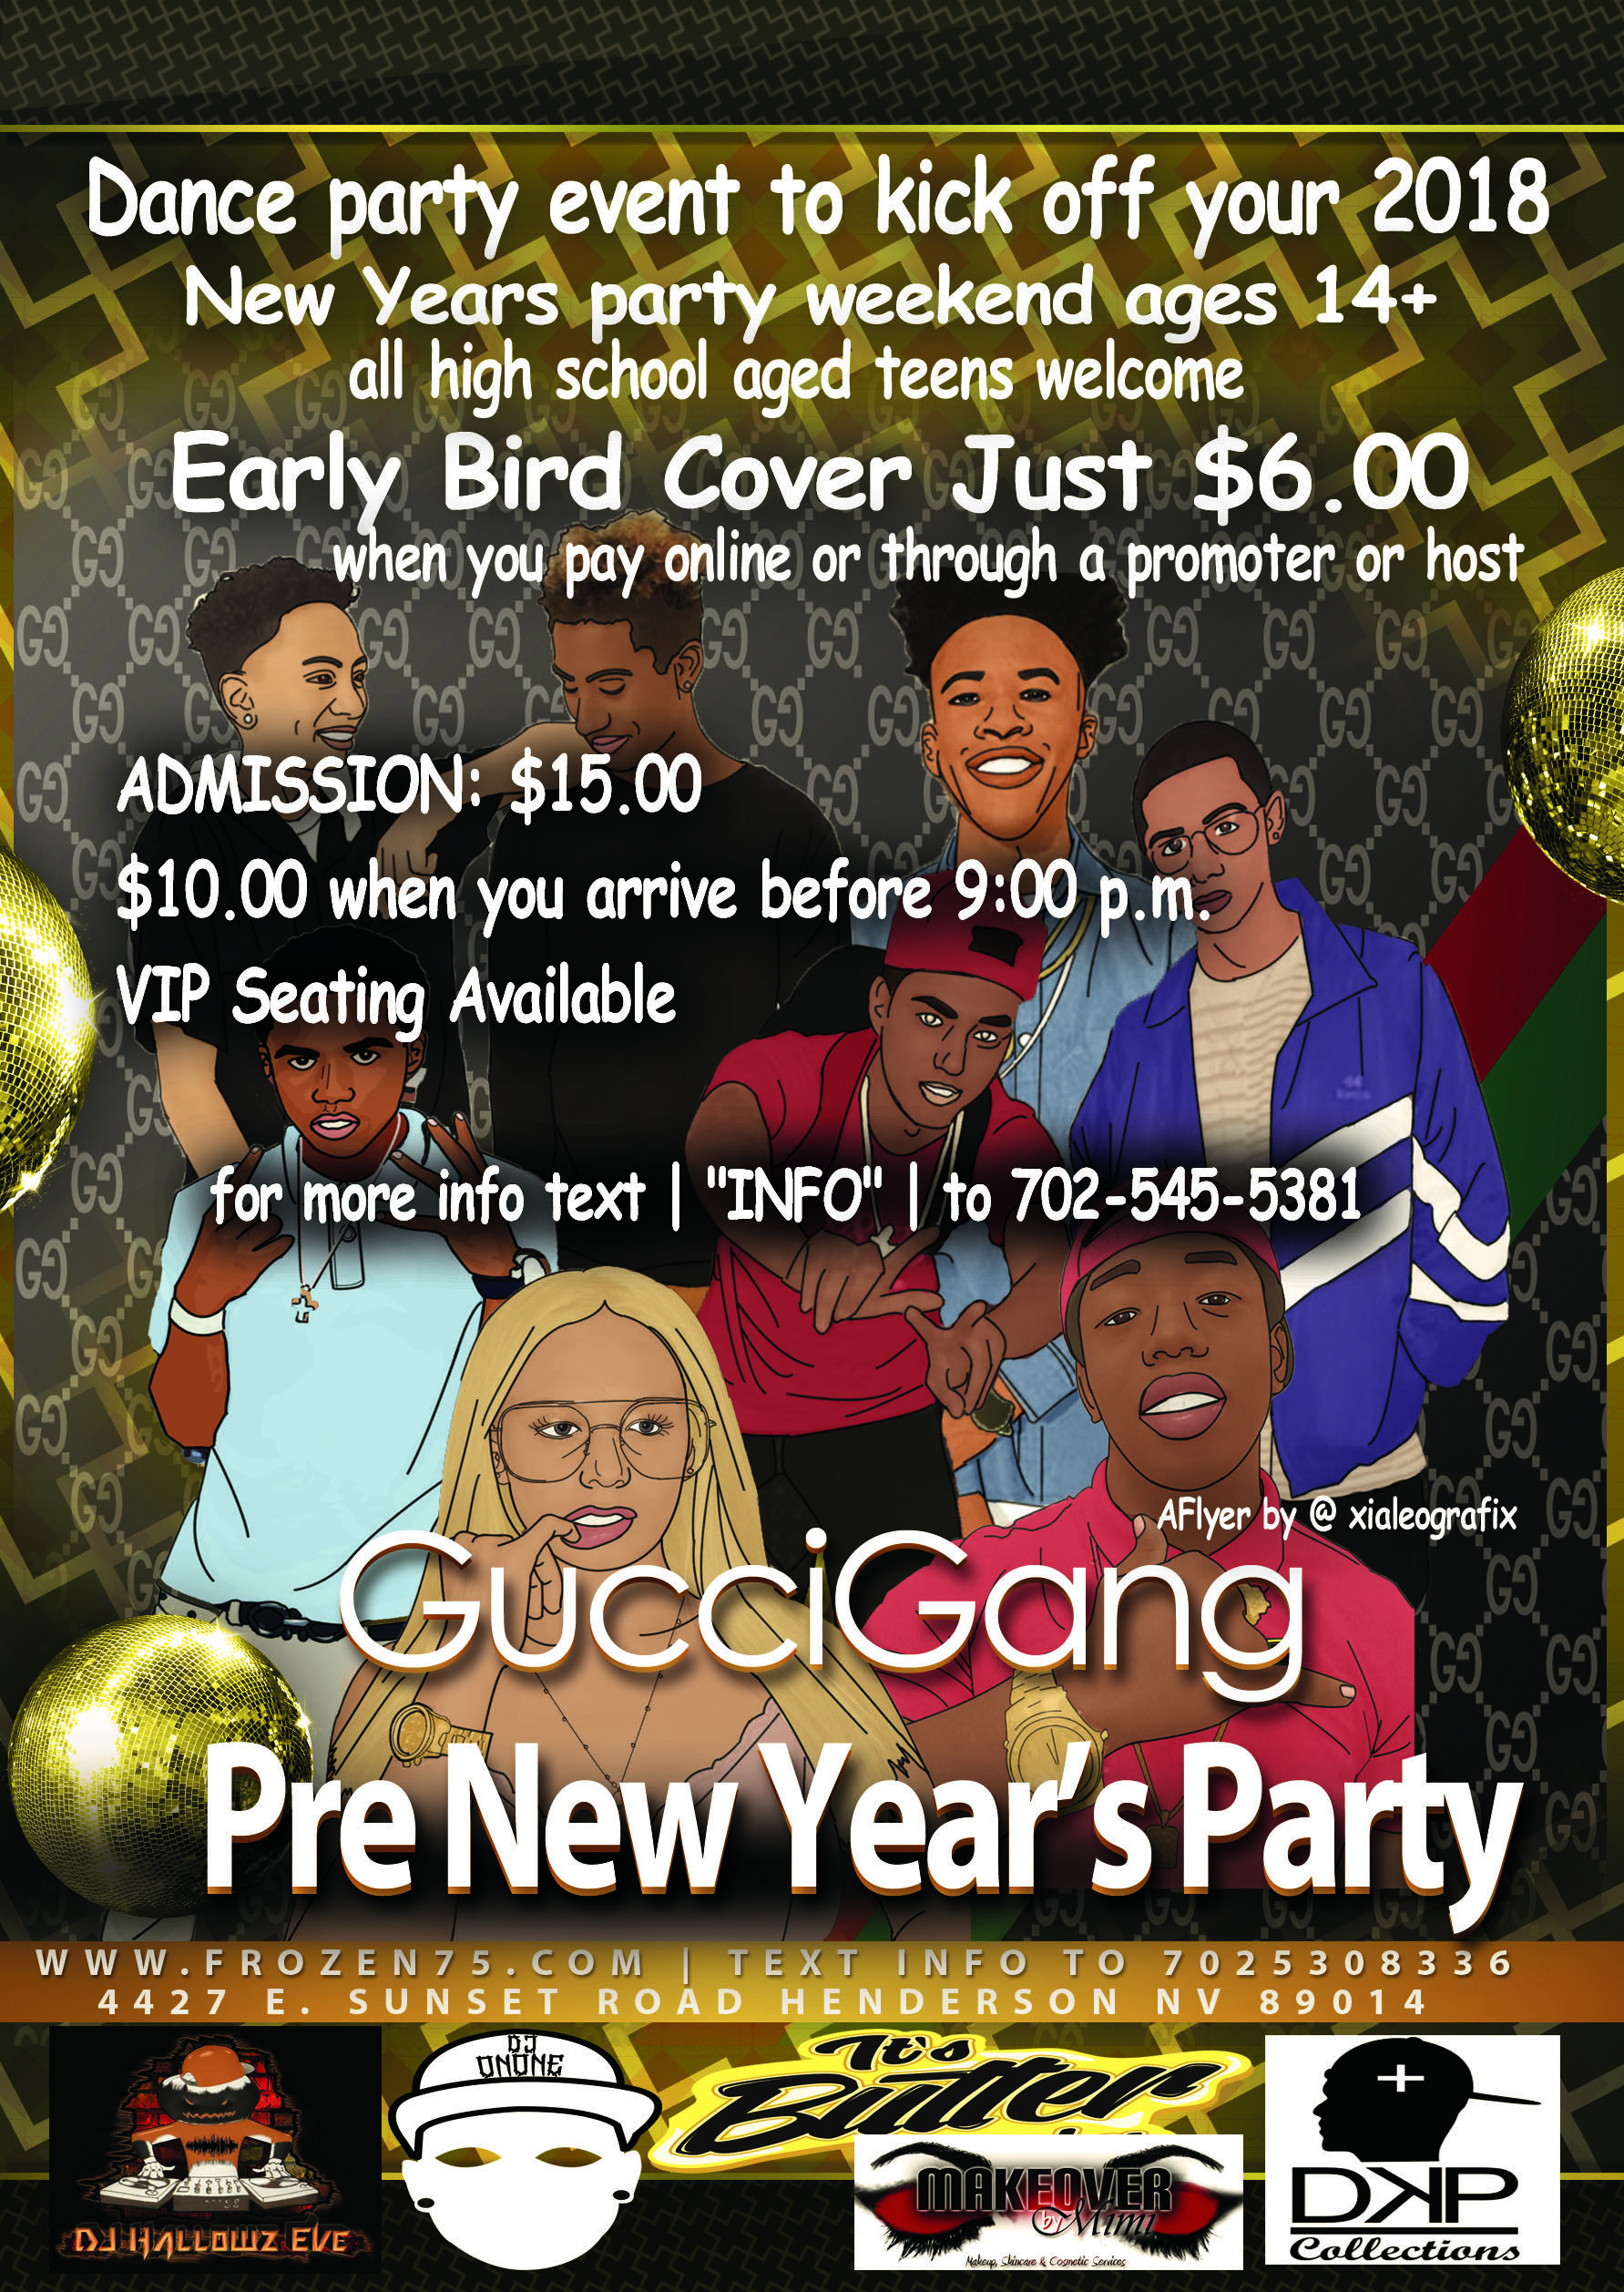 Gucci Gang Gucci Gang The Official Las Vegas Under 21 Dance Party Event To Kick Off Your 2018 New Years Par New Years Party High School Parties Party Tickets